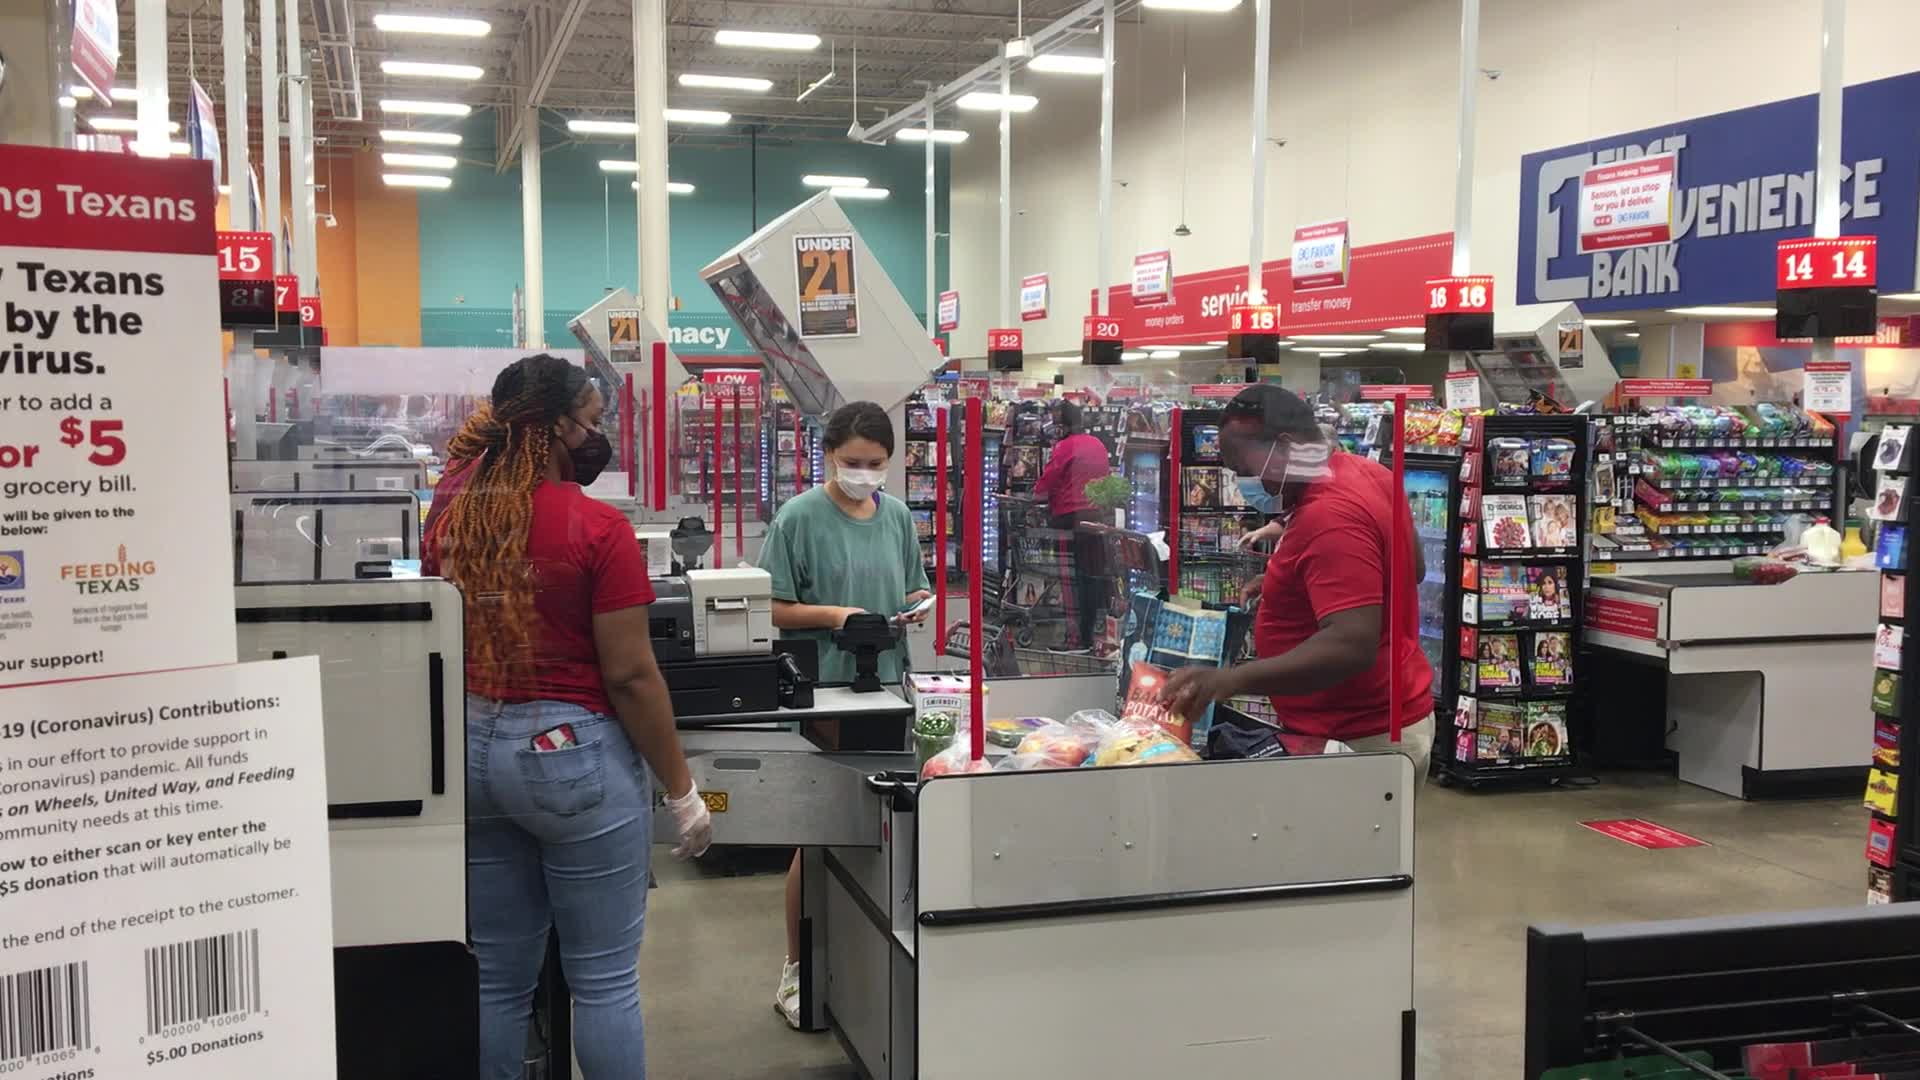 H-E-B implemented safety protocols including mandatory masks and plexiglass shields in March (KXAN Photo/Ryan Chandler)